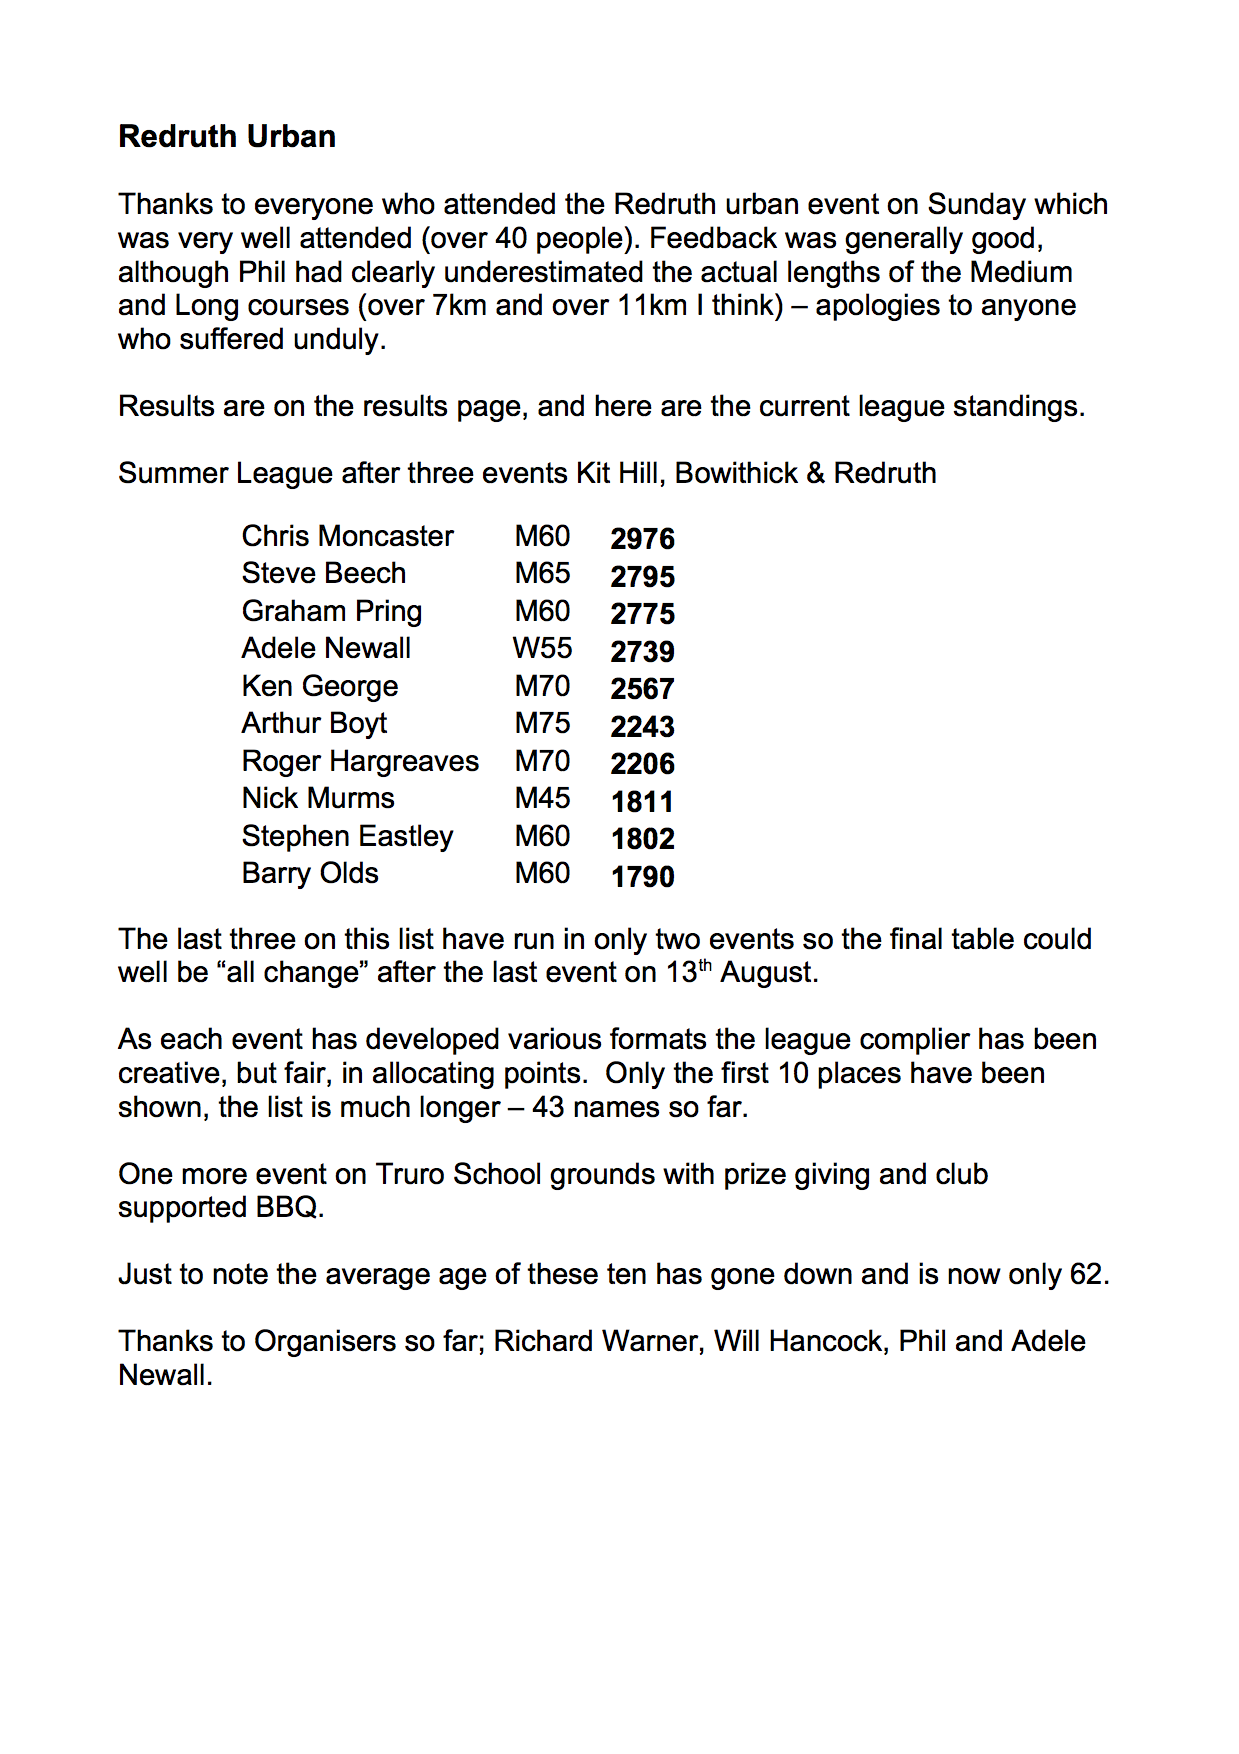 Summer League and Redruth results